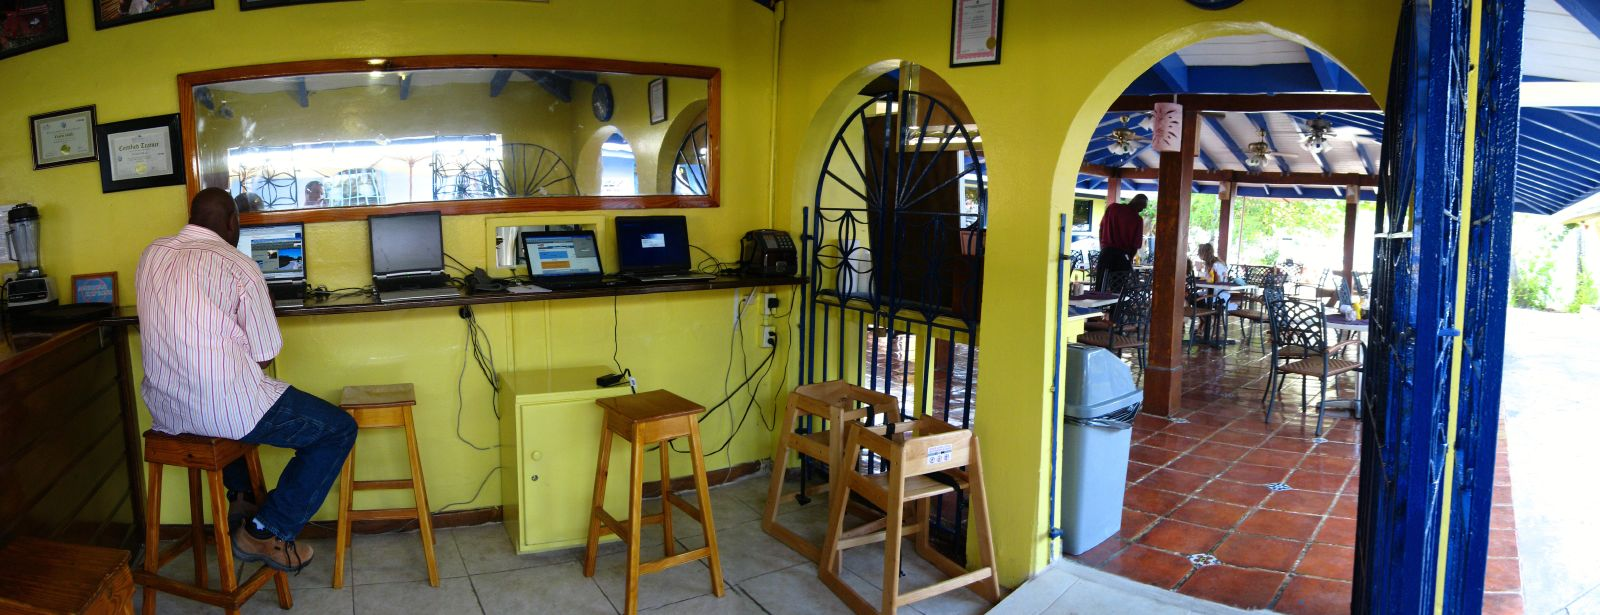 Internet cafe in Nanny Cay Marina, Tortola, British Virgin Islands